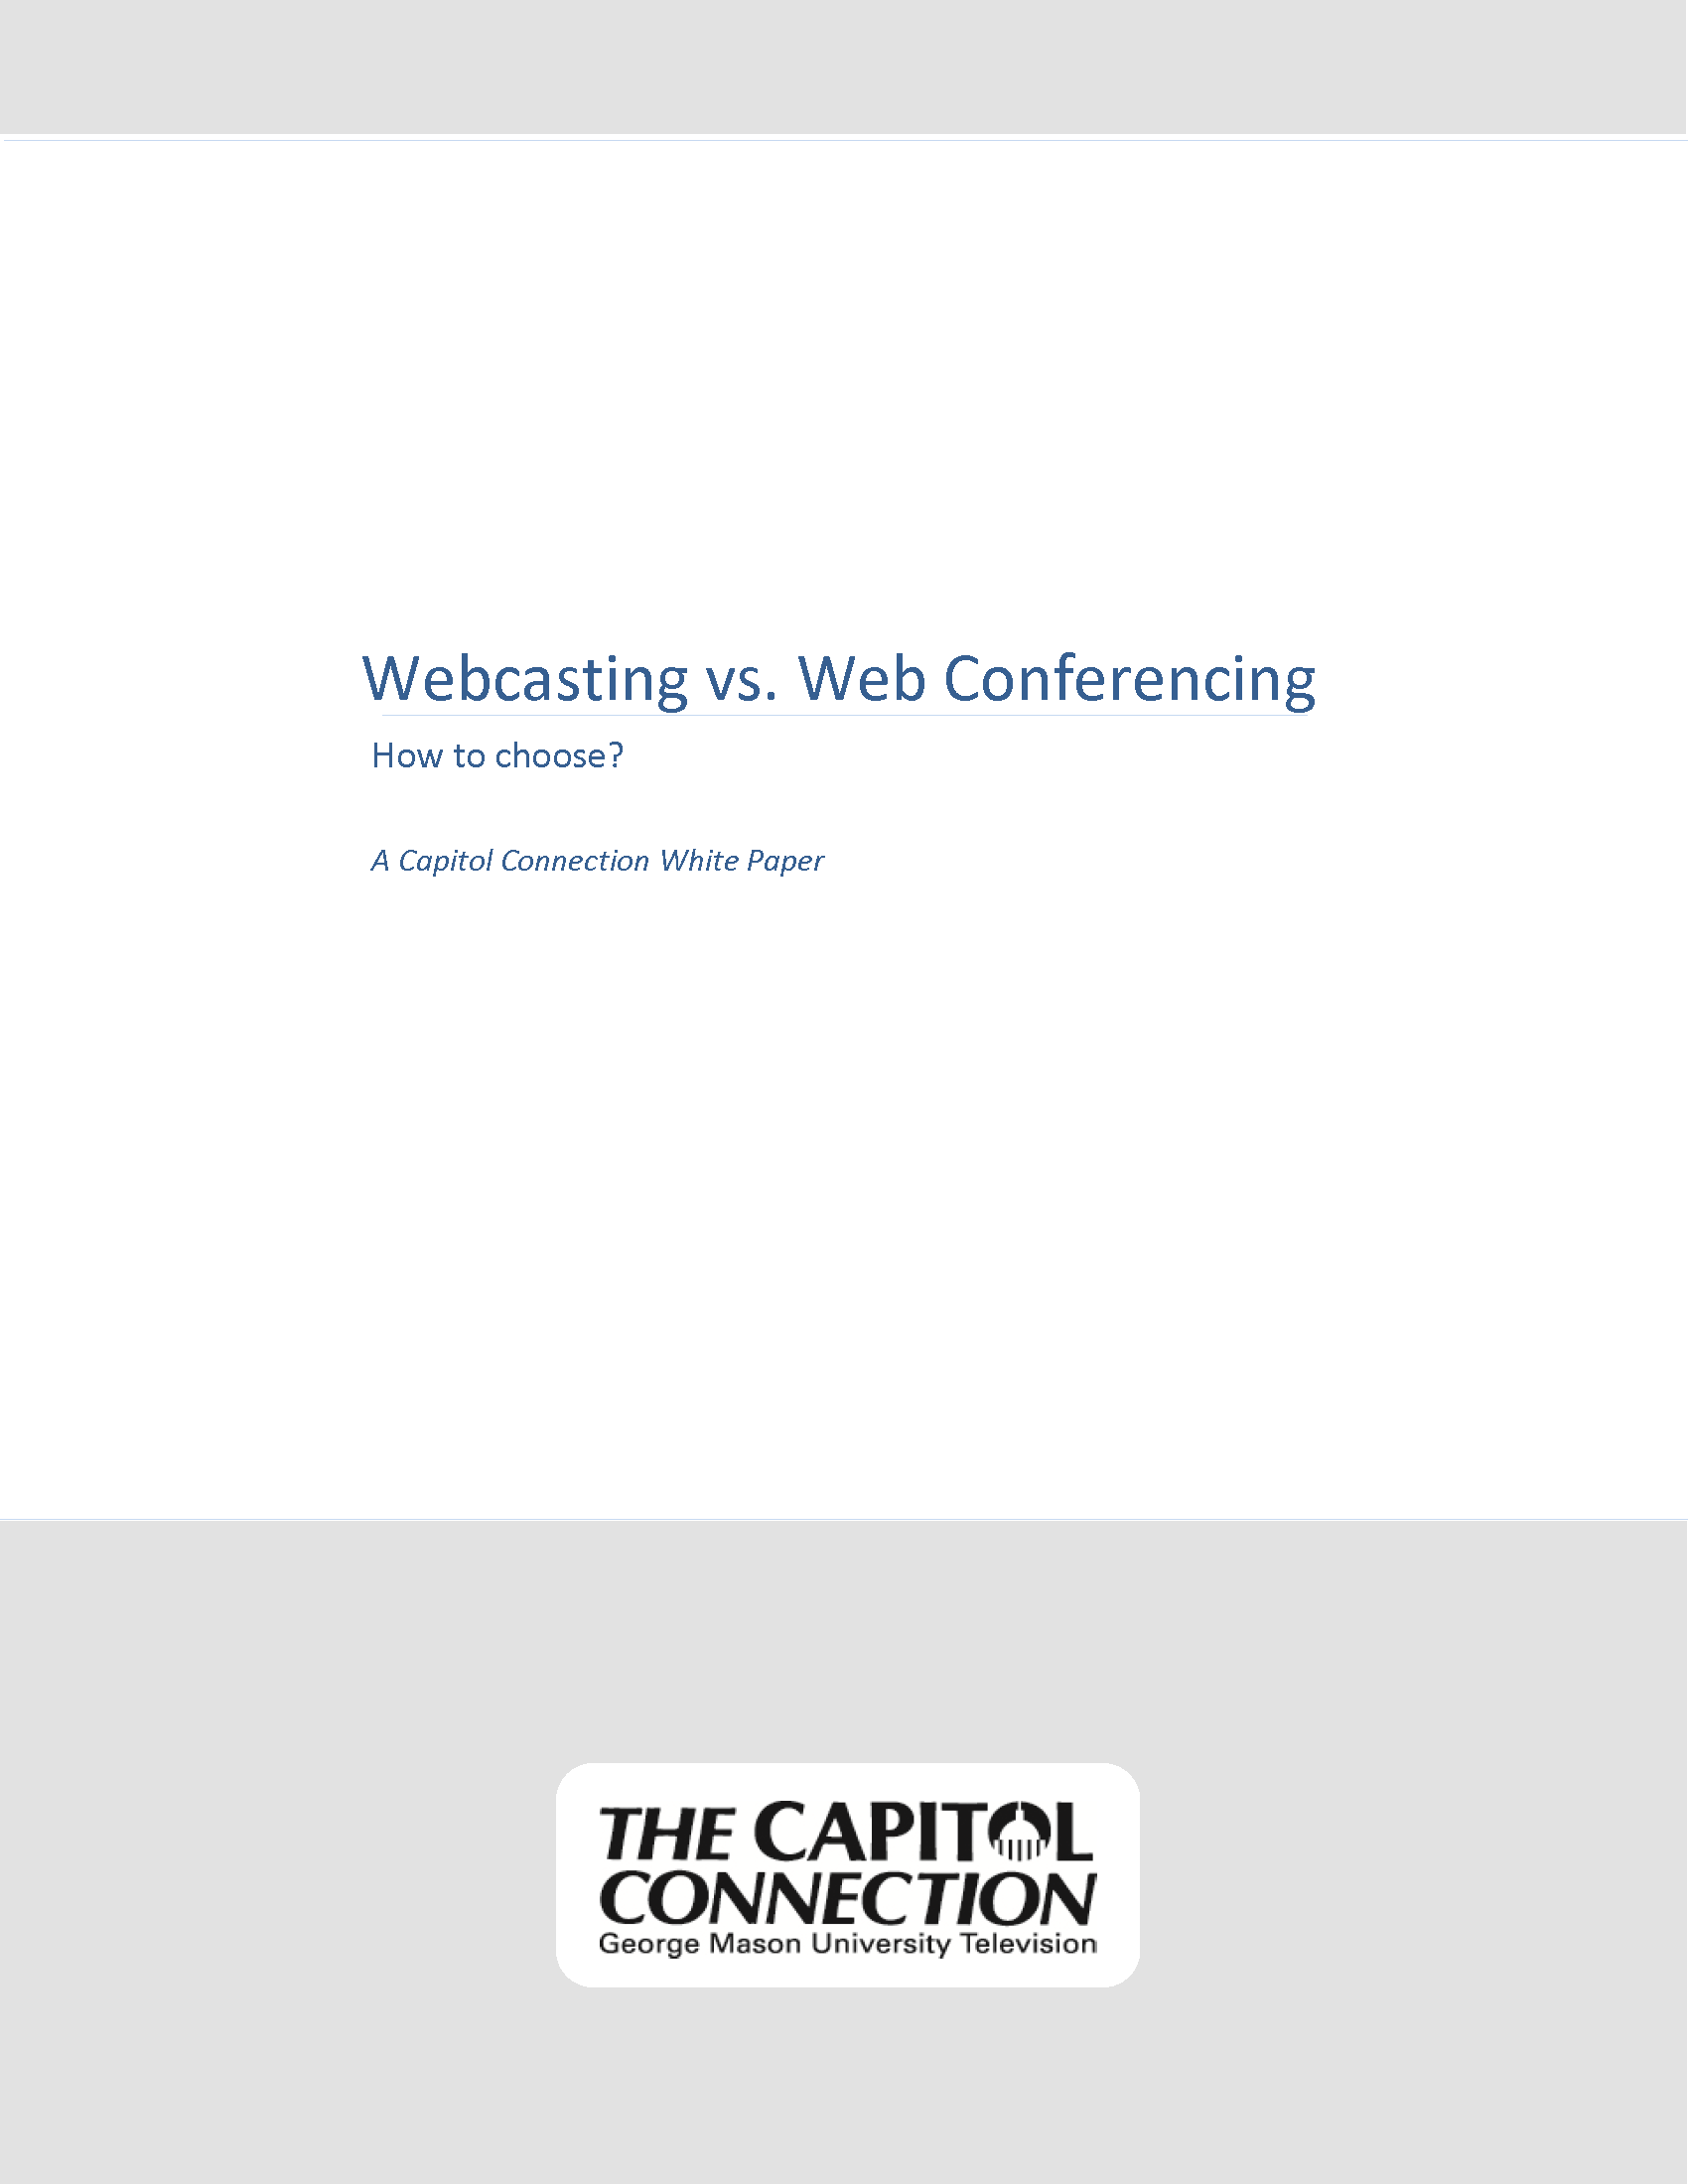 Webcast_vs__webconference_White_Paper_10-2014_Page_1